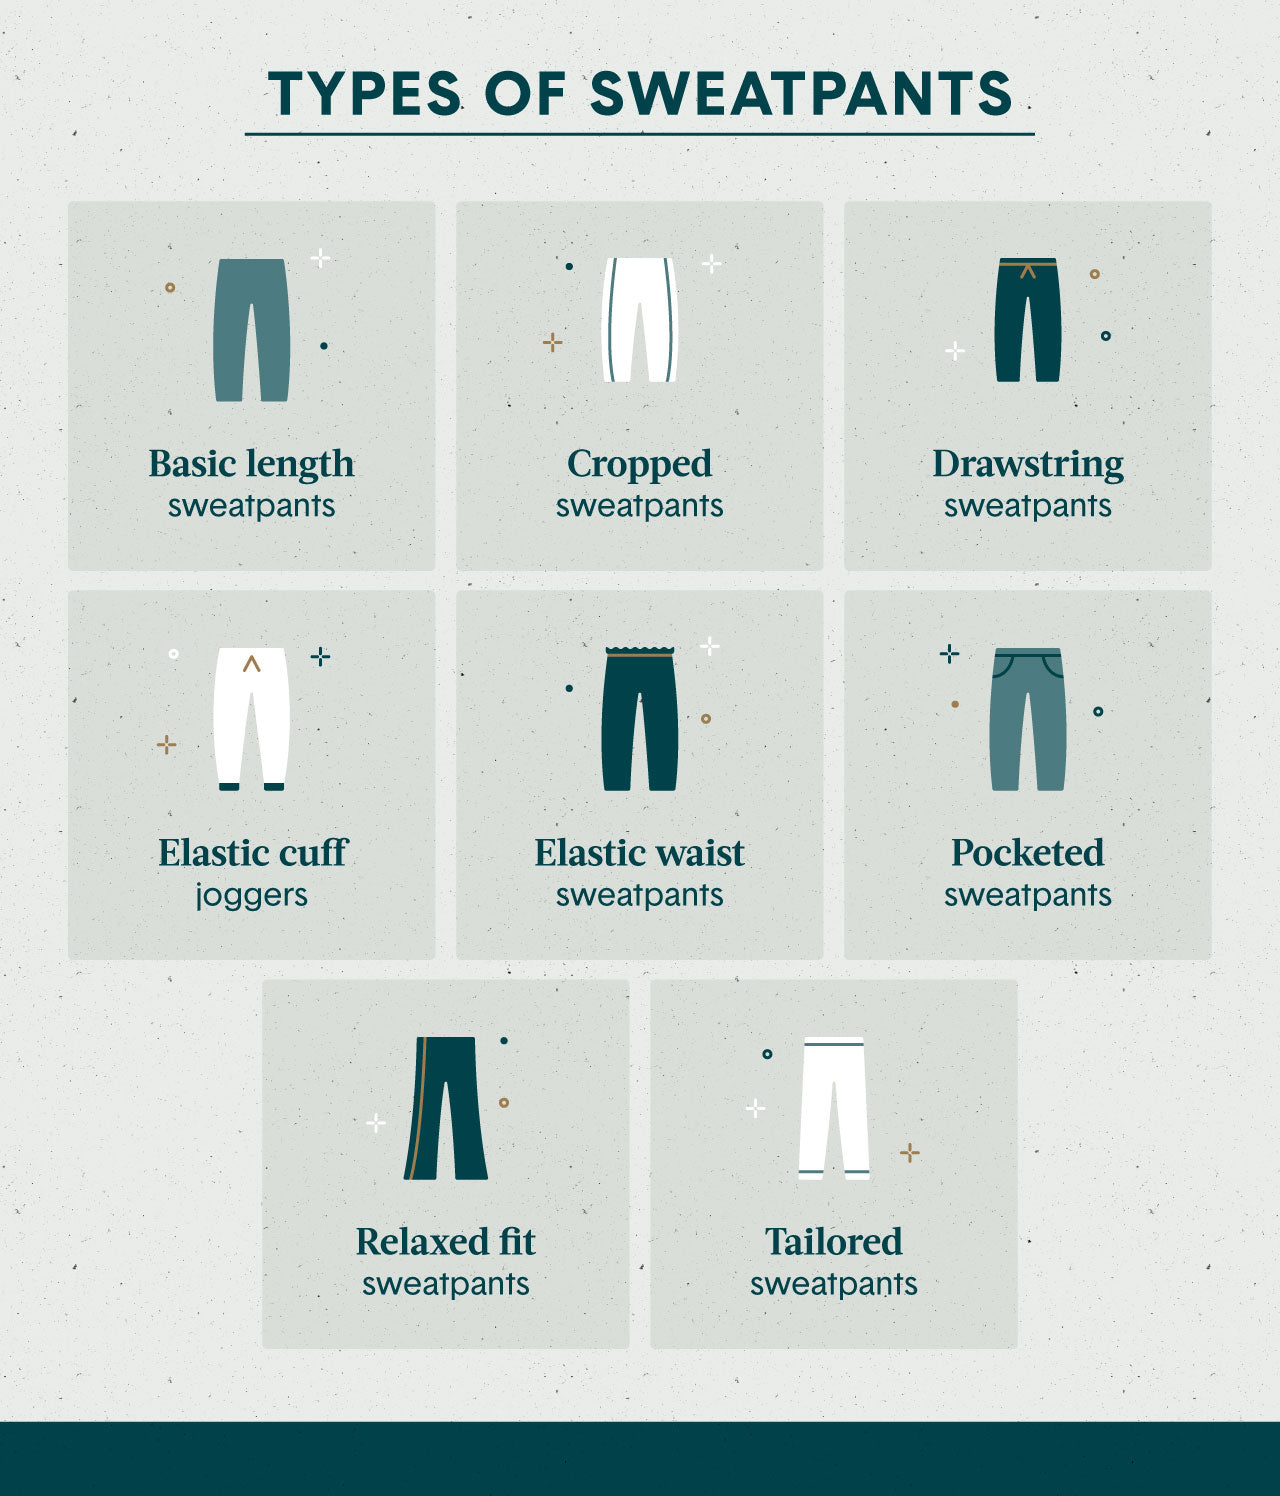 8 illustrations depicting different types of sweatpants including cropped drawstring and tailored sweatpants